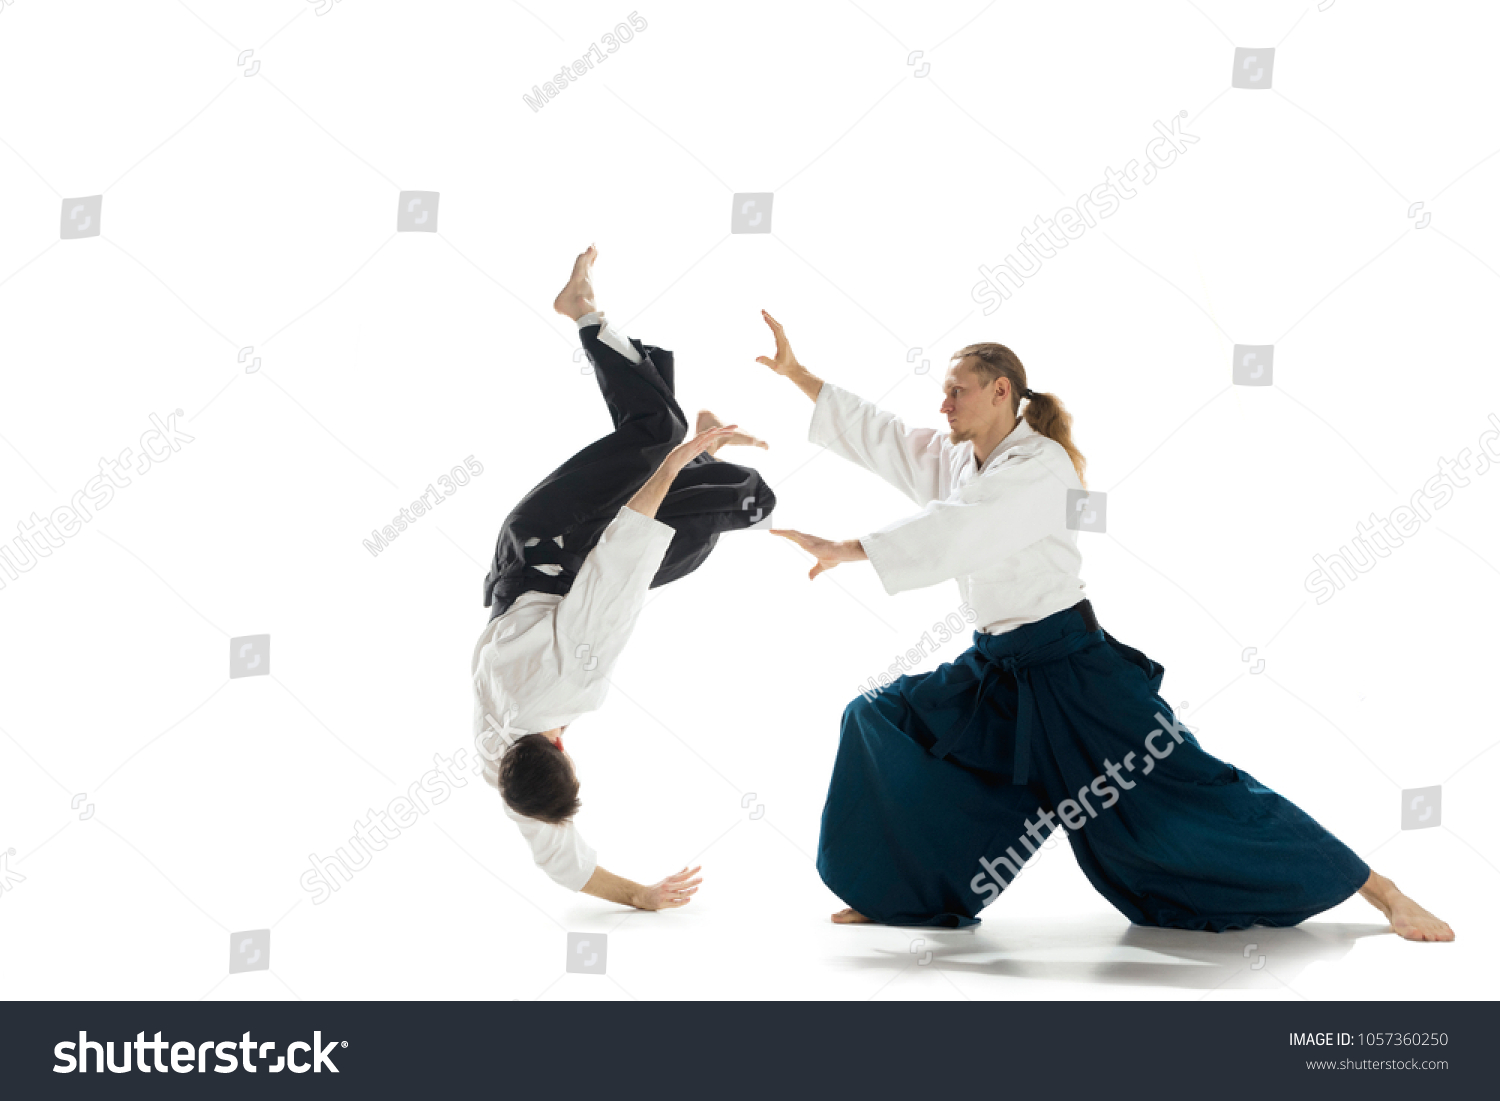 fc92bb0664419 Men fighting at Aikido training in martial arts school. Healthy lifestyle  and sports concept.